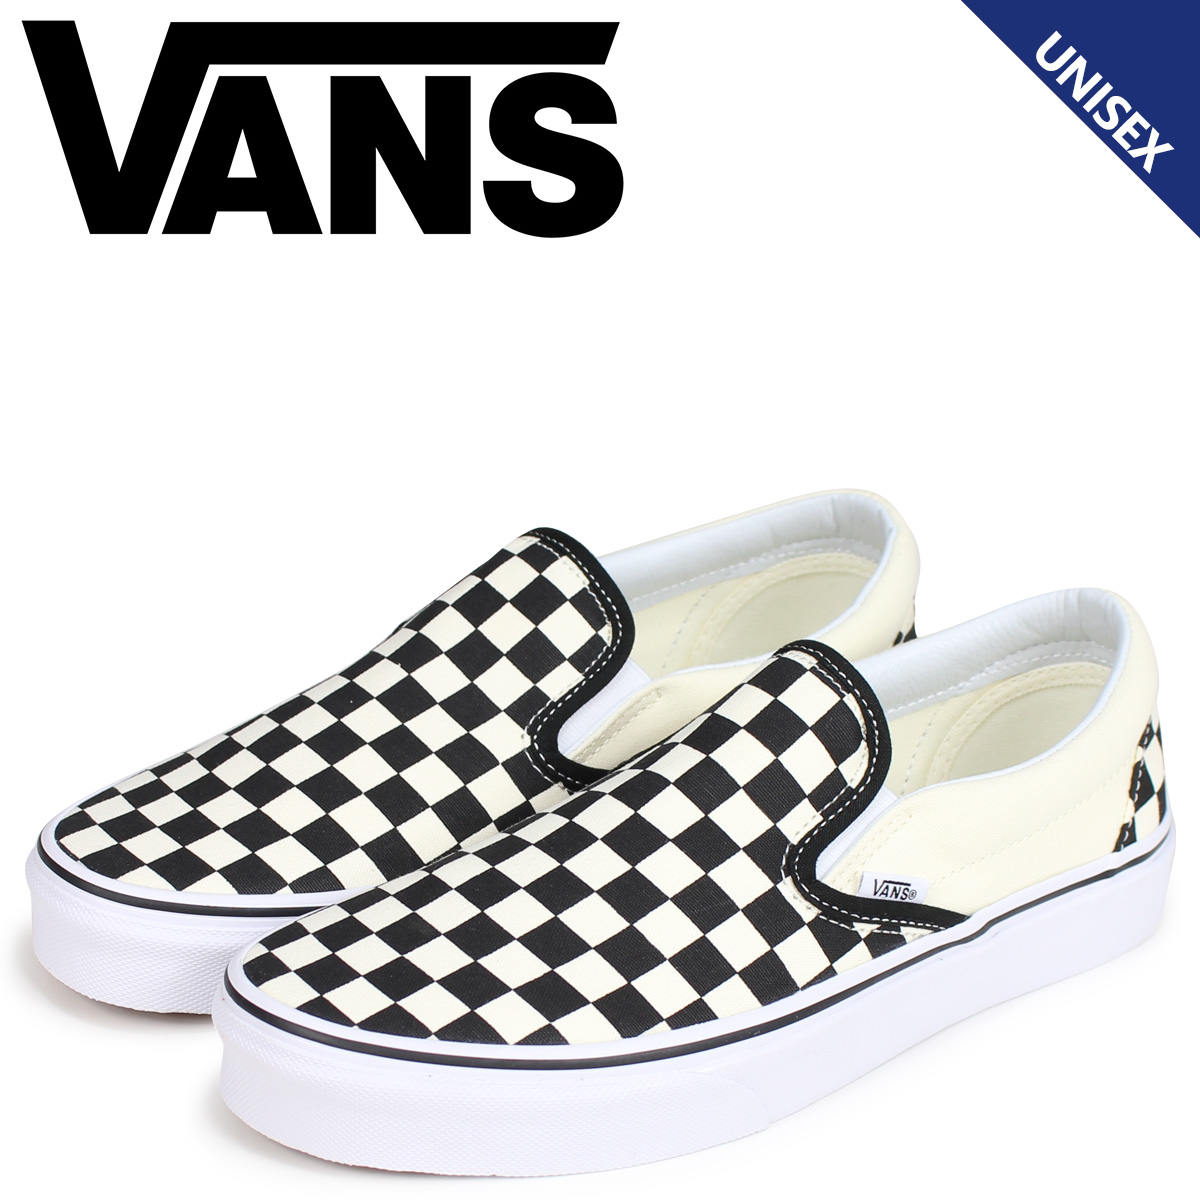 fa35ba3e0b22 [brand VANS getting deep-rooted support from a skater and a bikie].  Representative model